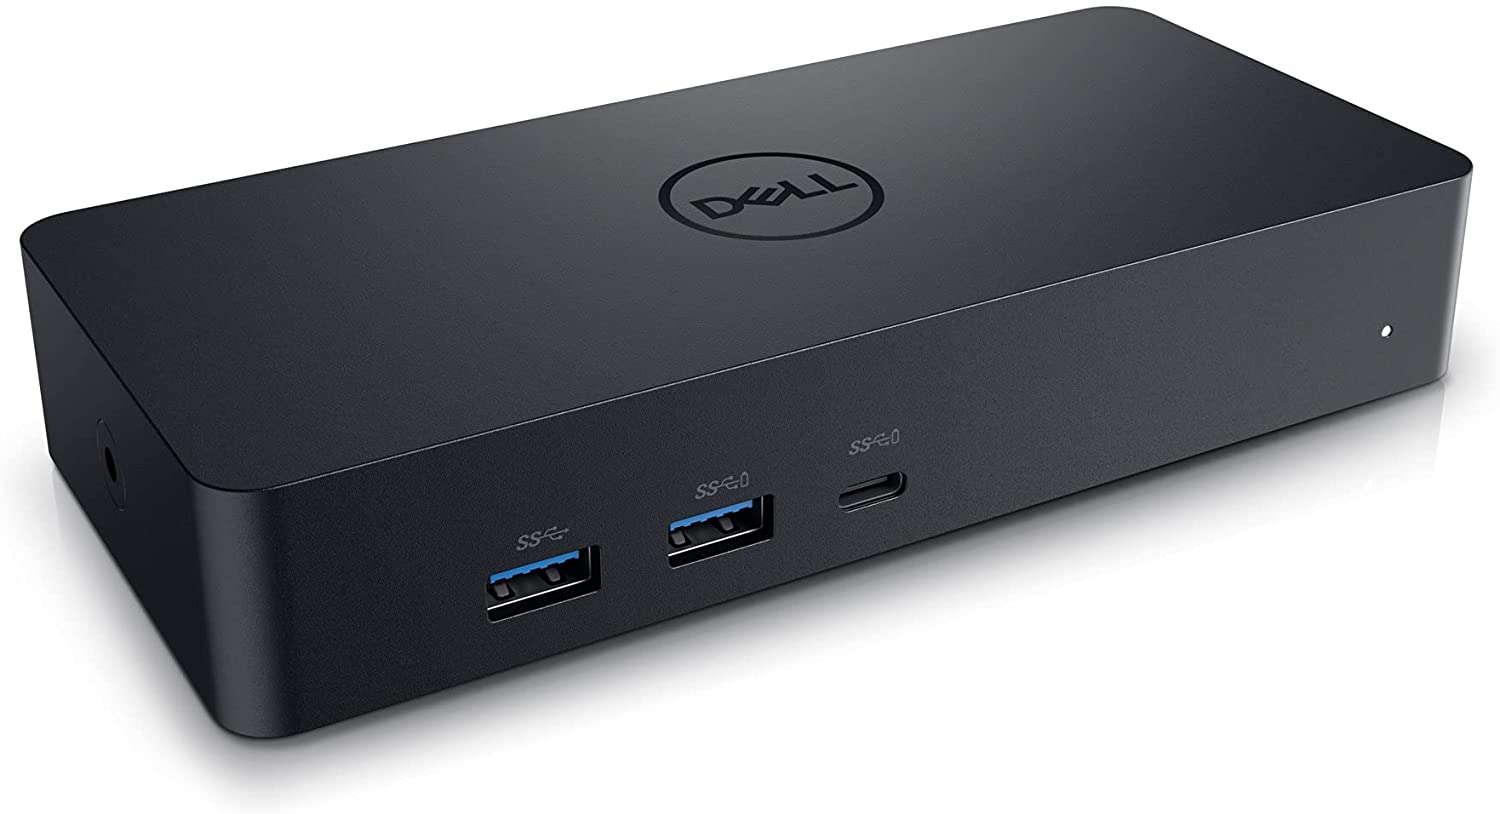 Dell Universal Dock - D6000S, Equipped with USB-C/USB-A PowerShare Options, Connect Upto Three 4K Displays, LED Indicator, Black